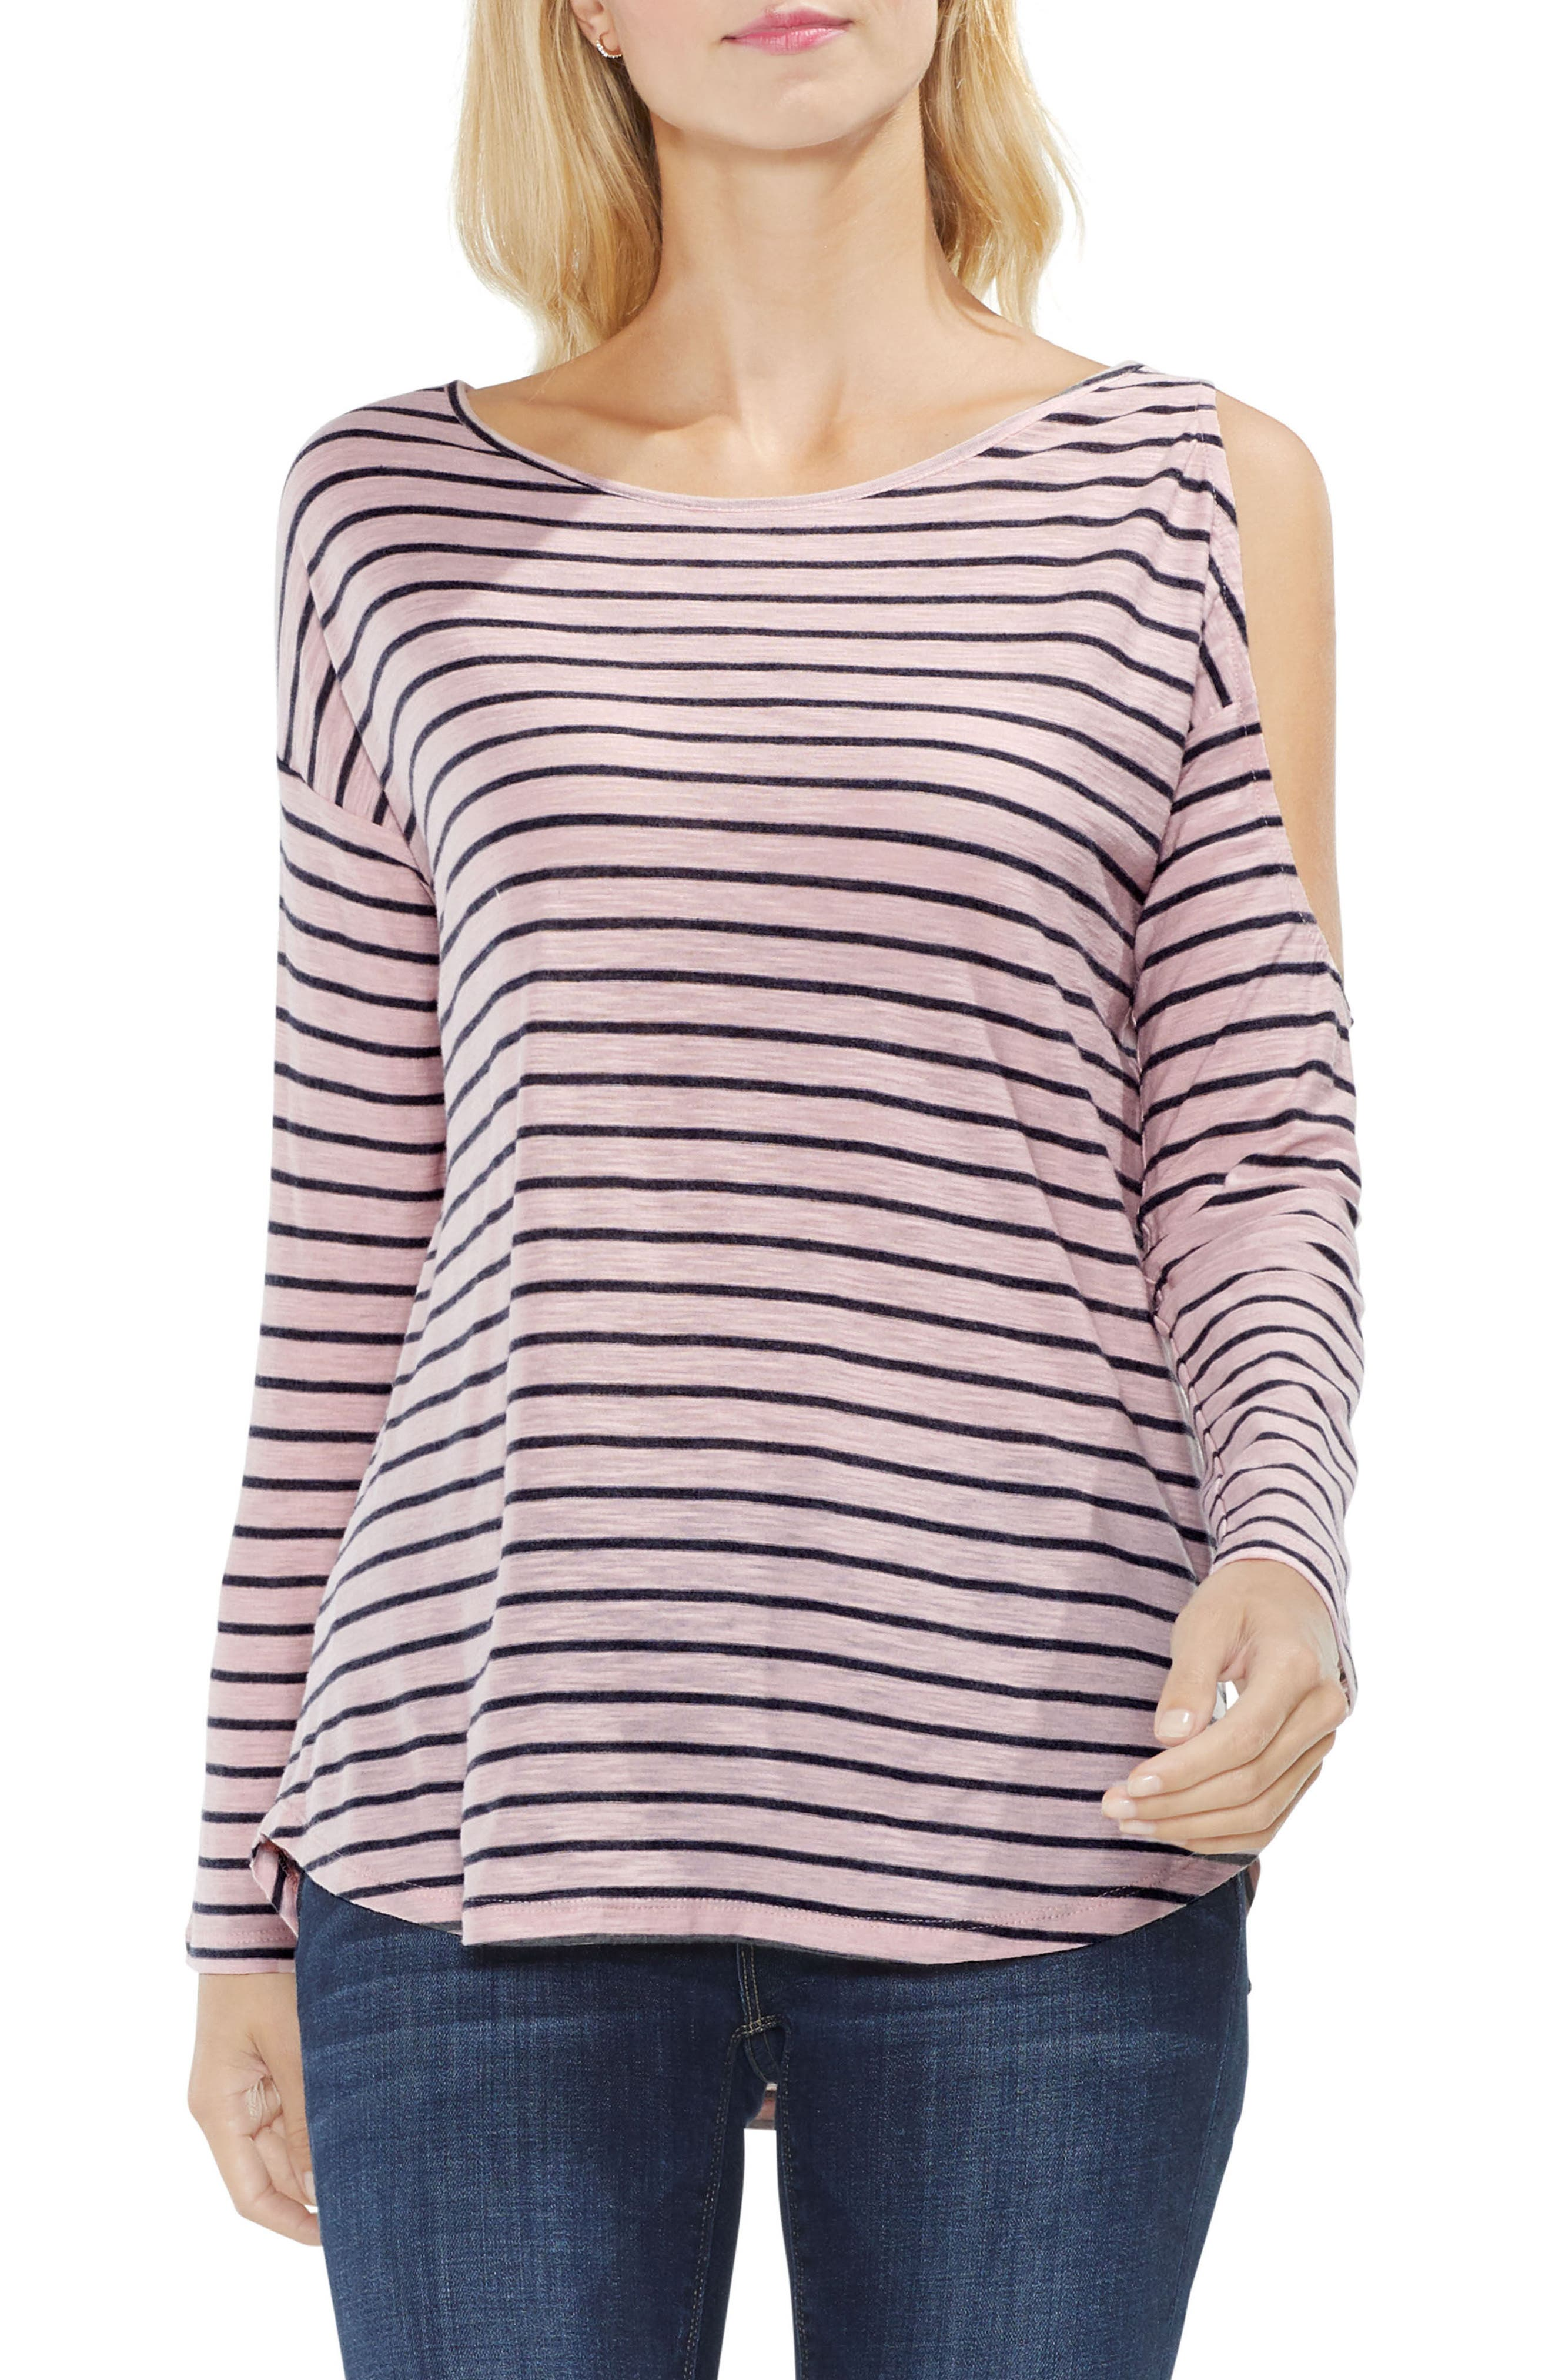 Main Image - Two by Vince Camuto Rapid Stripe Top